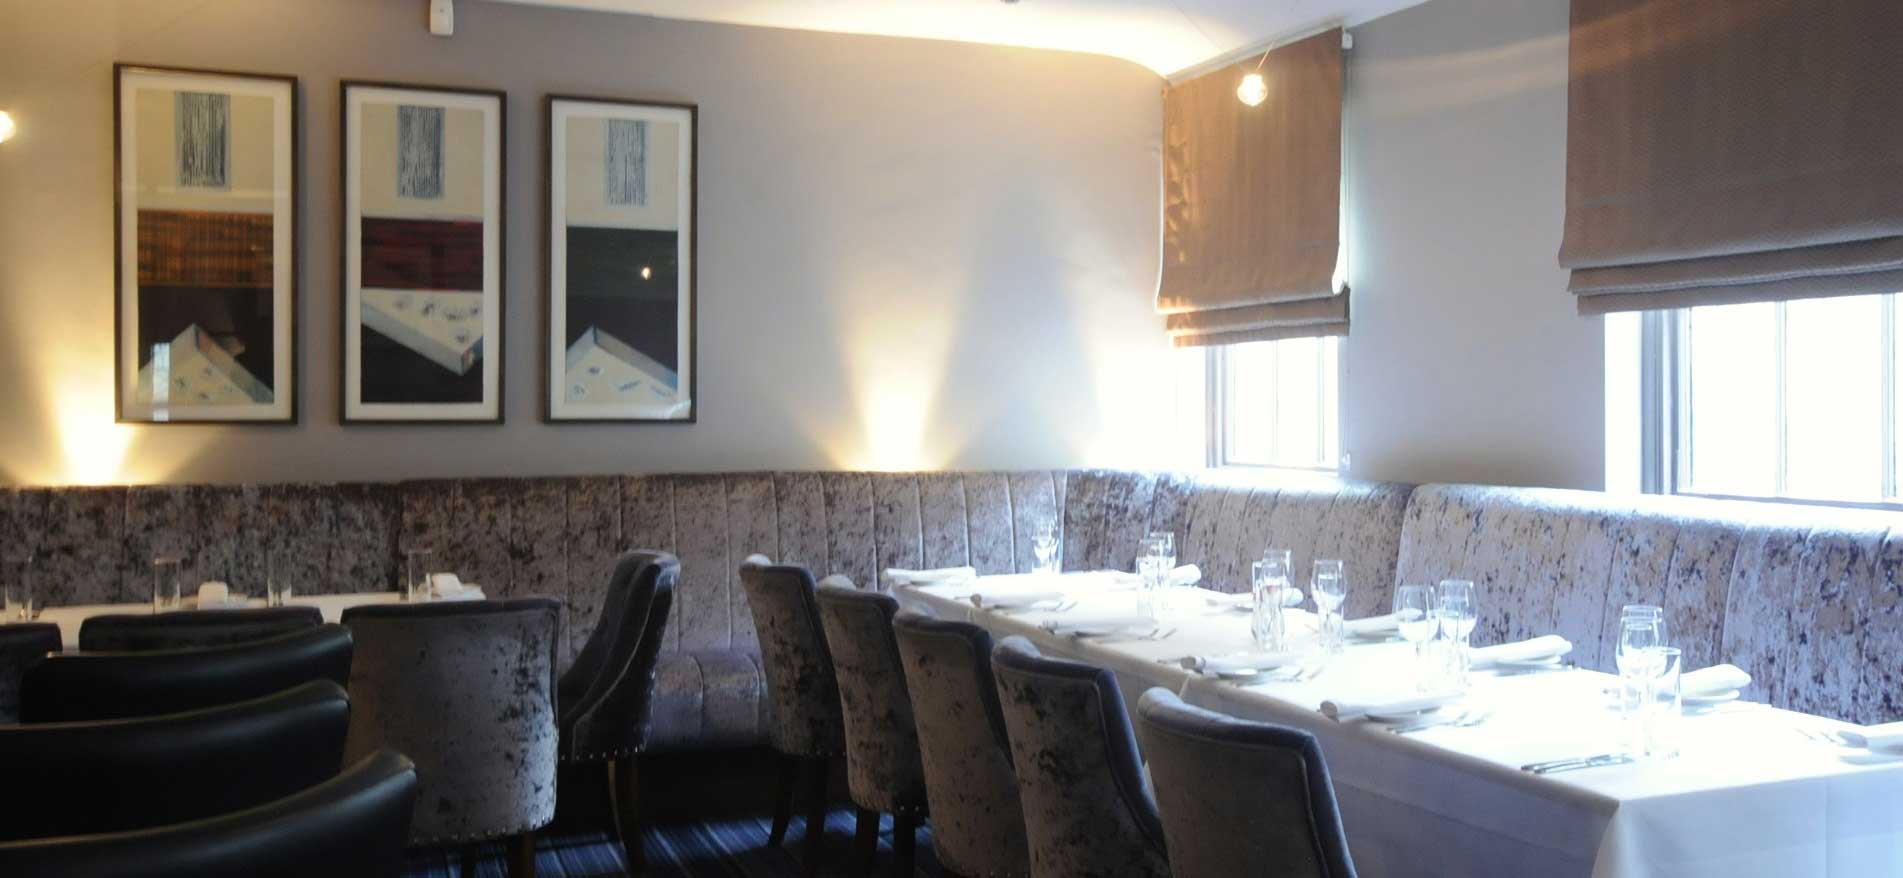 Restaurant Painting & Decorating